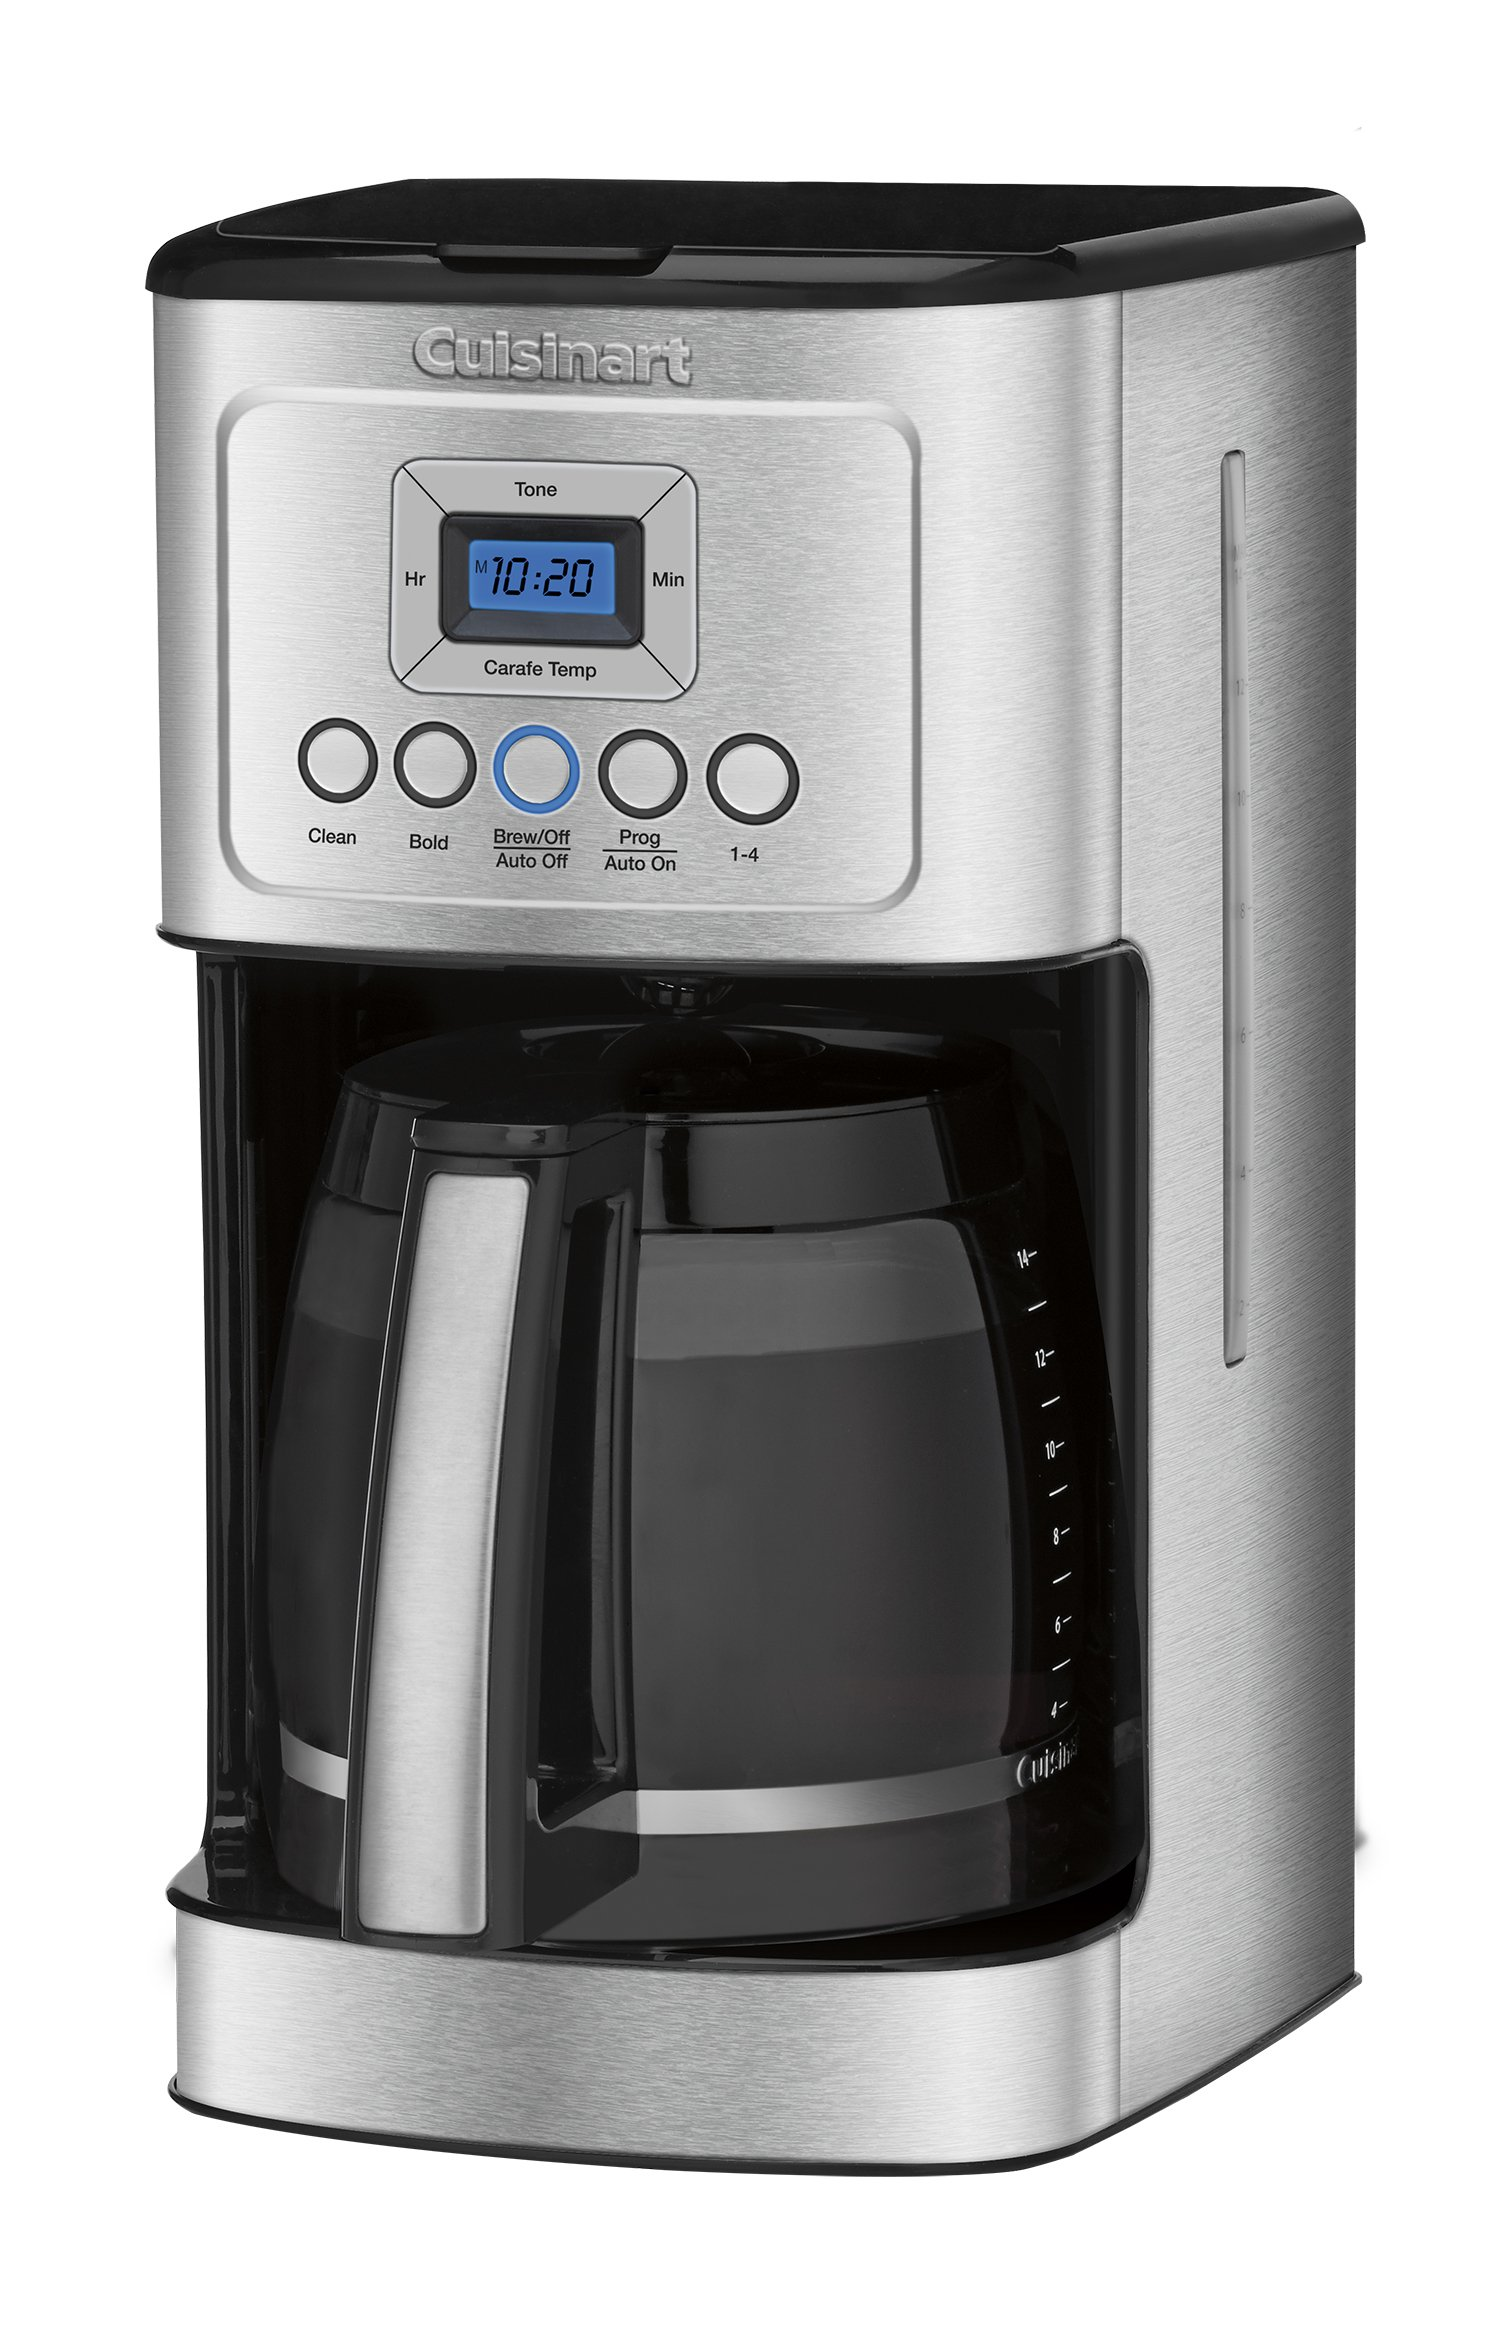 Cuisinart DCC-3200 14-Cup Glass Carafe with Stainless Steel Handle Programmable Coffeemaker, Silver by Cuisinart (Image #3)